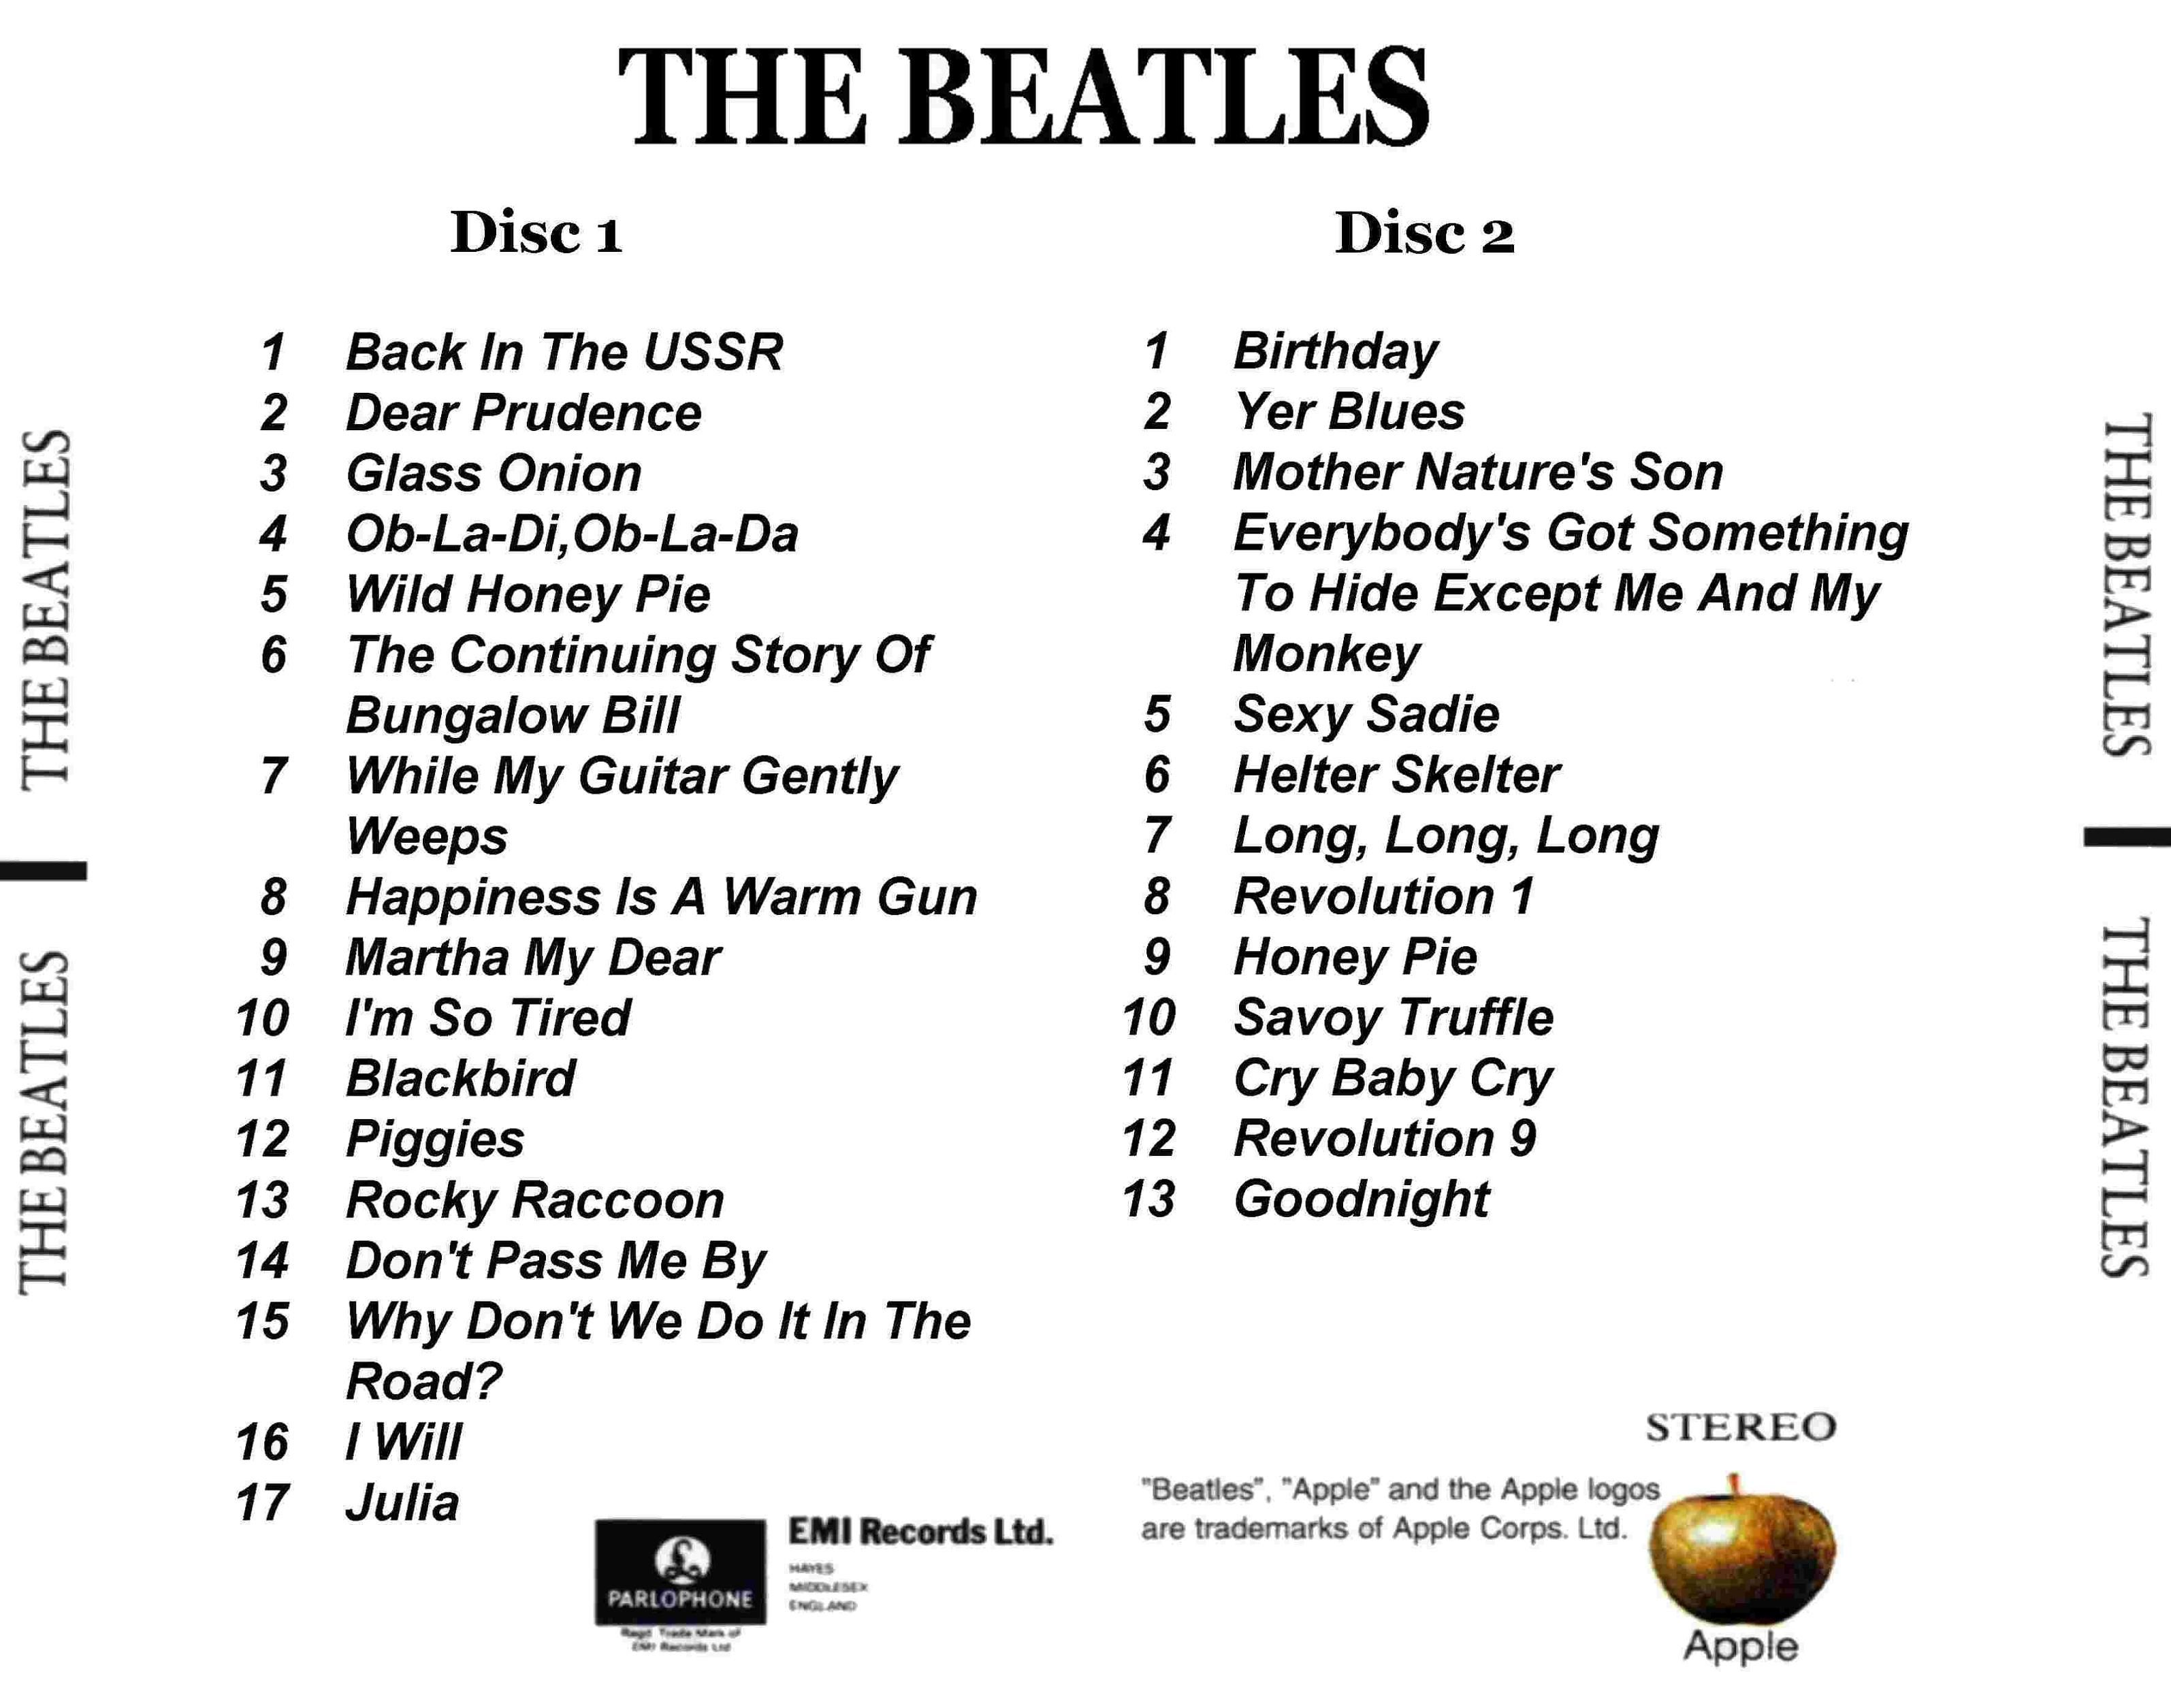 The Beatles - The White Album, Disc 1 and Disc 2 | Various